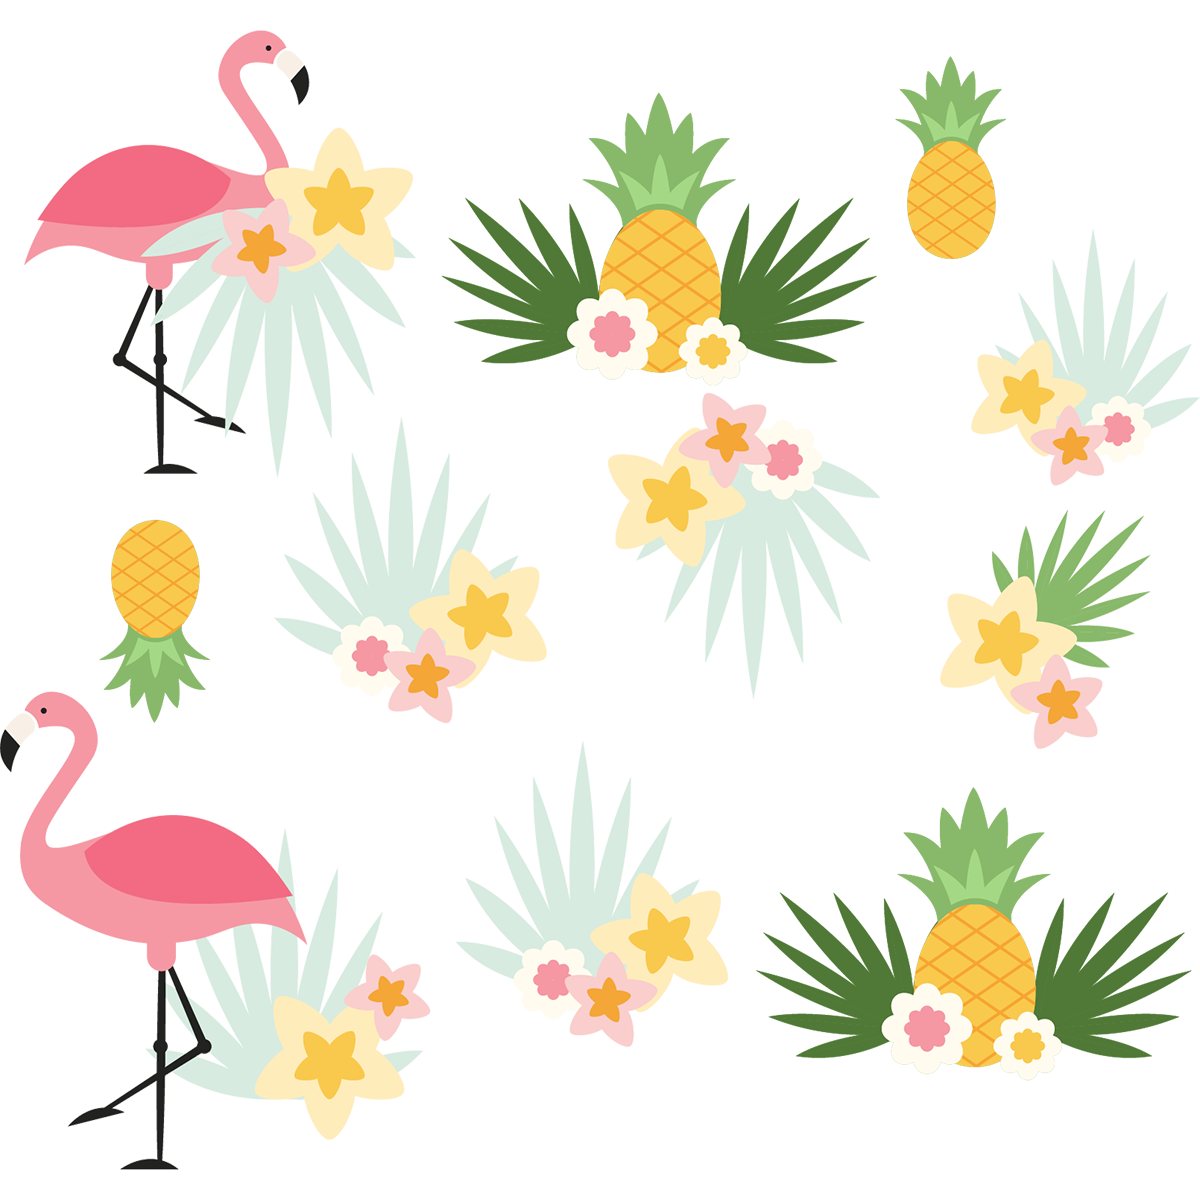 Sticker flamants roses exotiques stickers nature fleurs - Stickers flamant rose ...